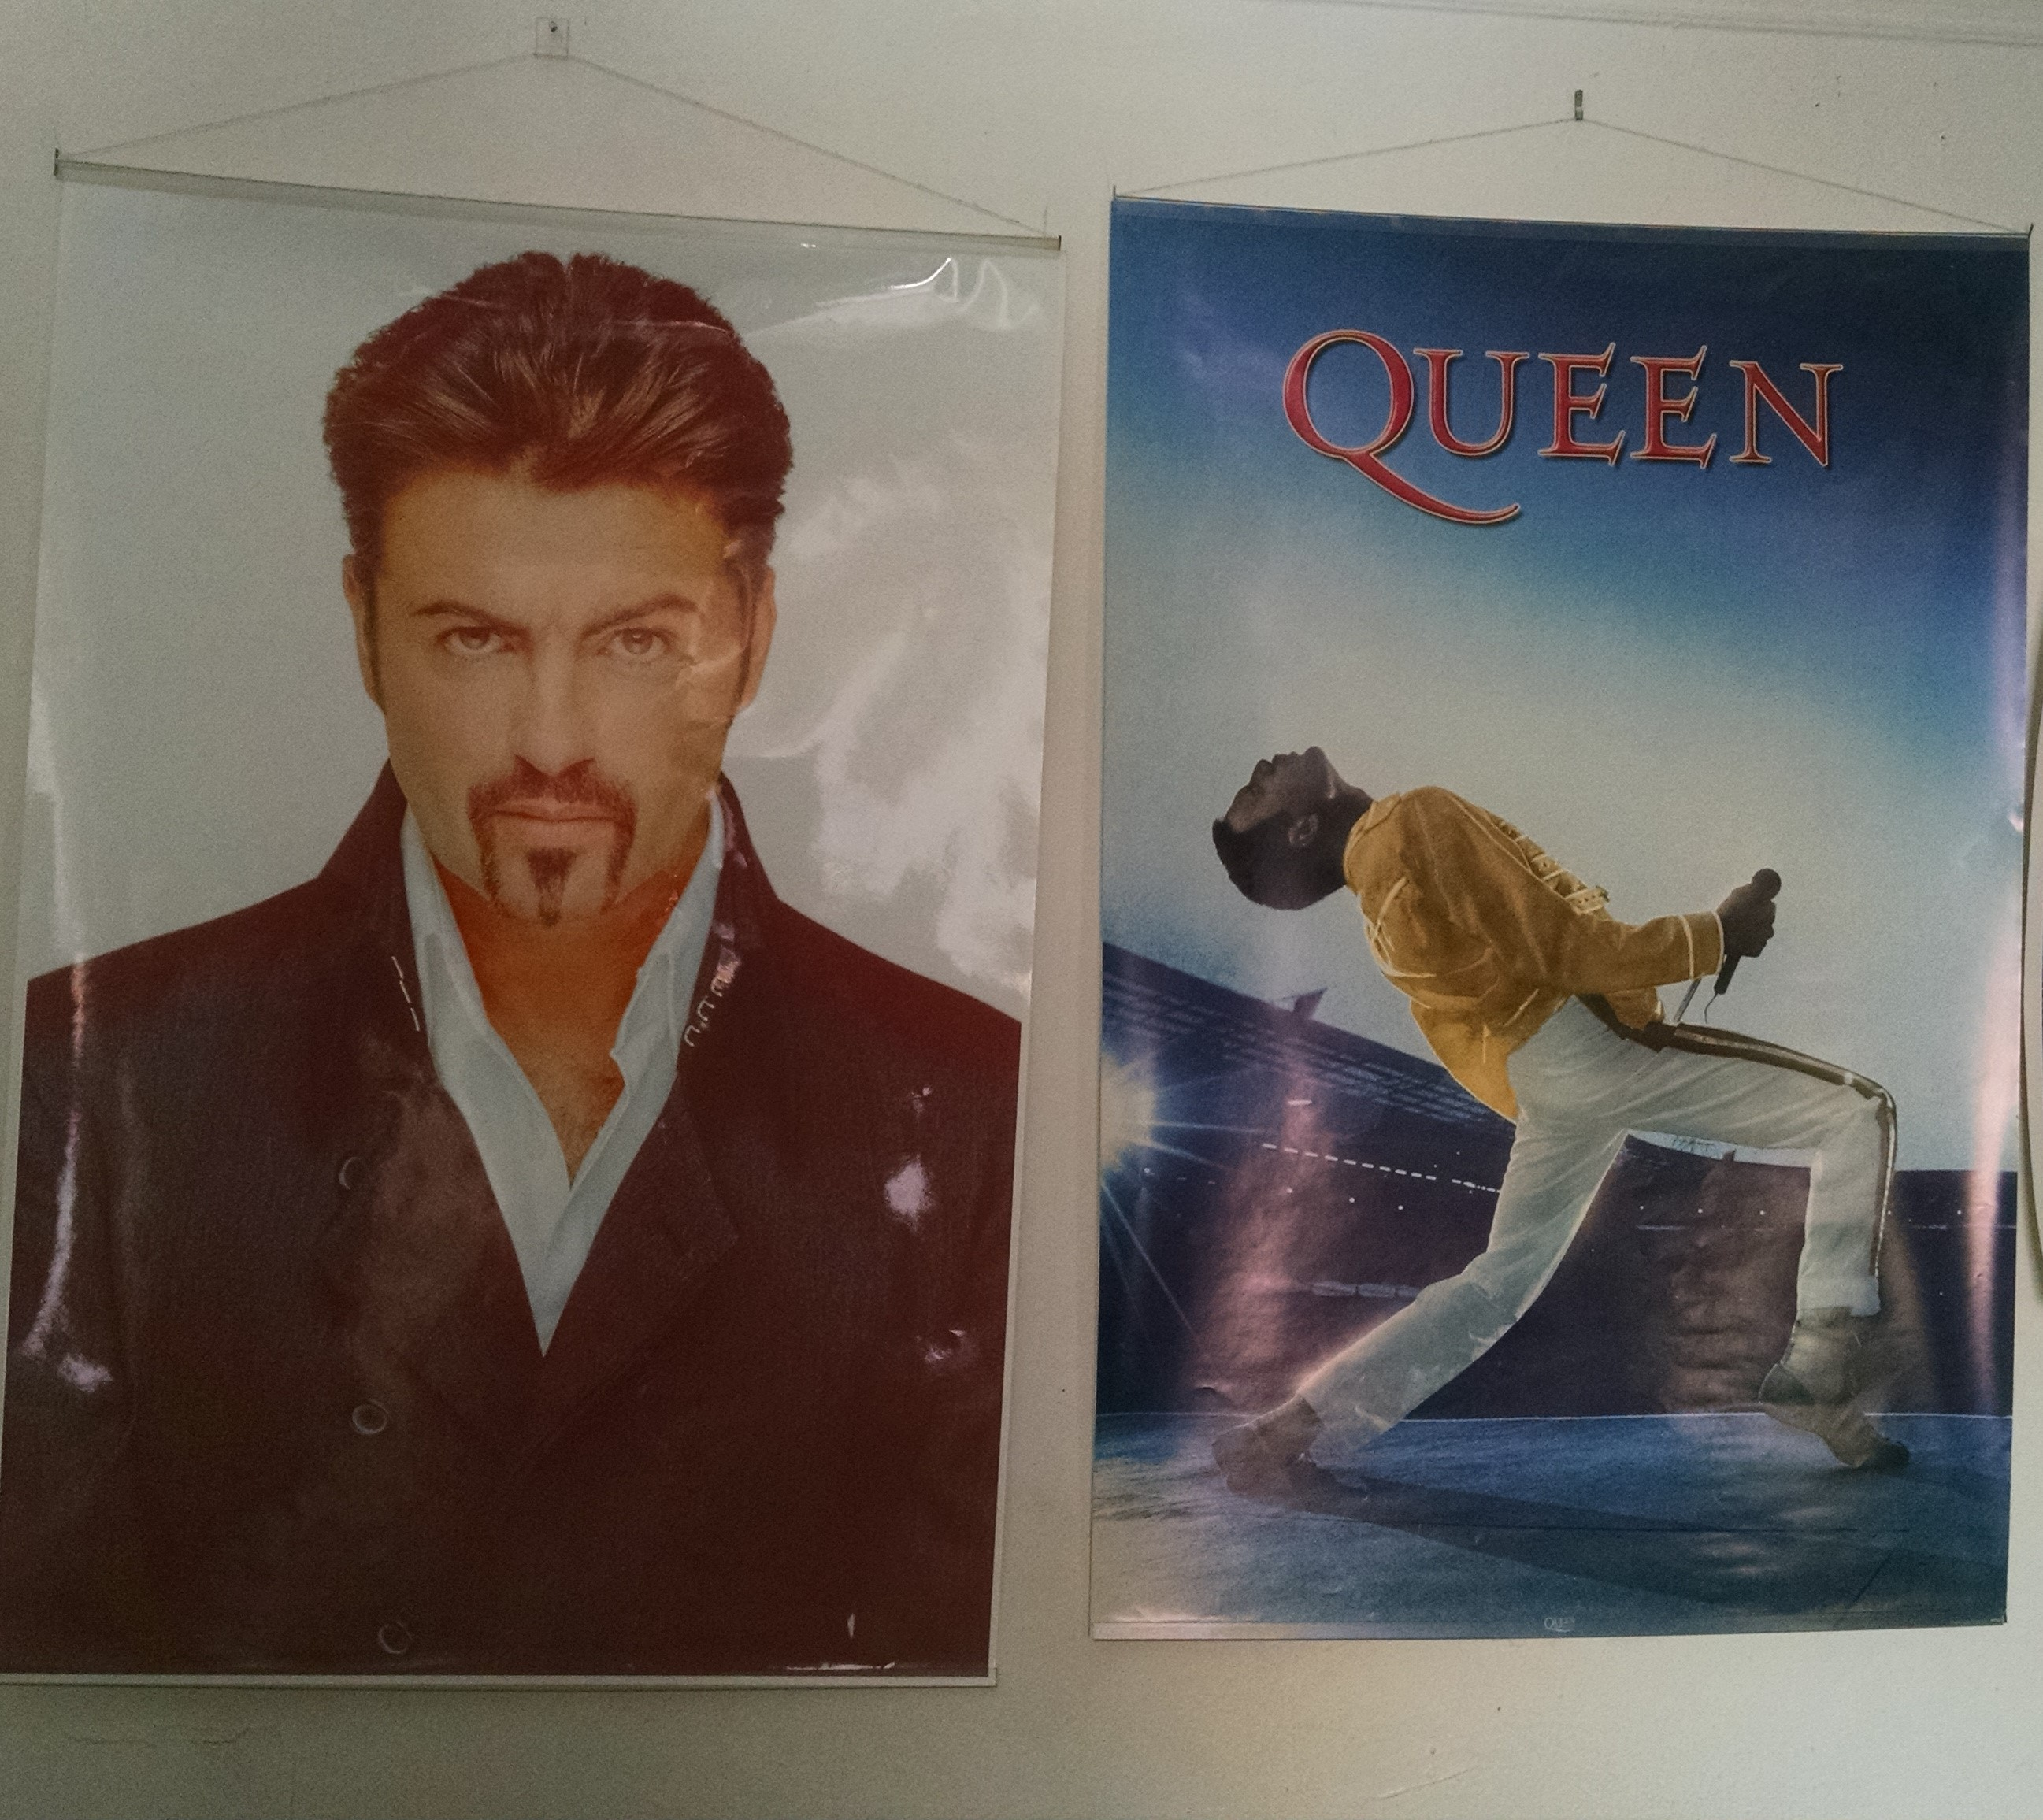 Image of a George Michael poster, and a Freddie Mercury poster, on the author's wall